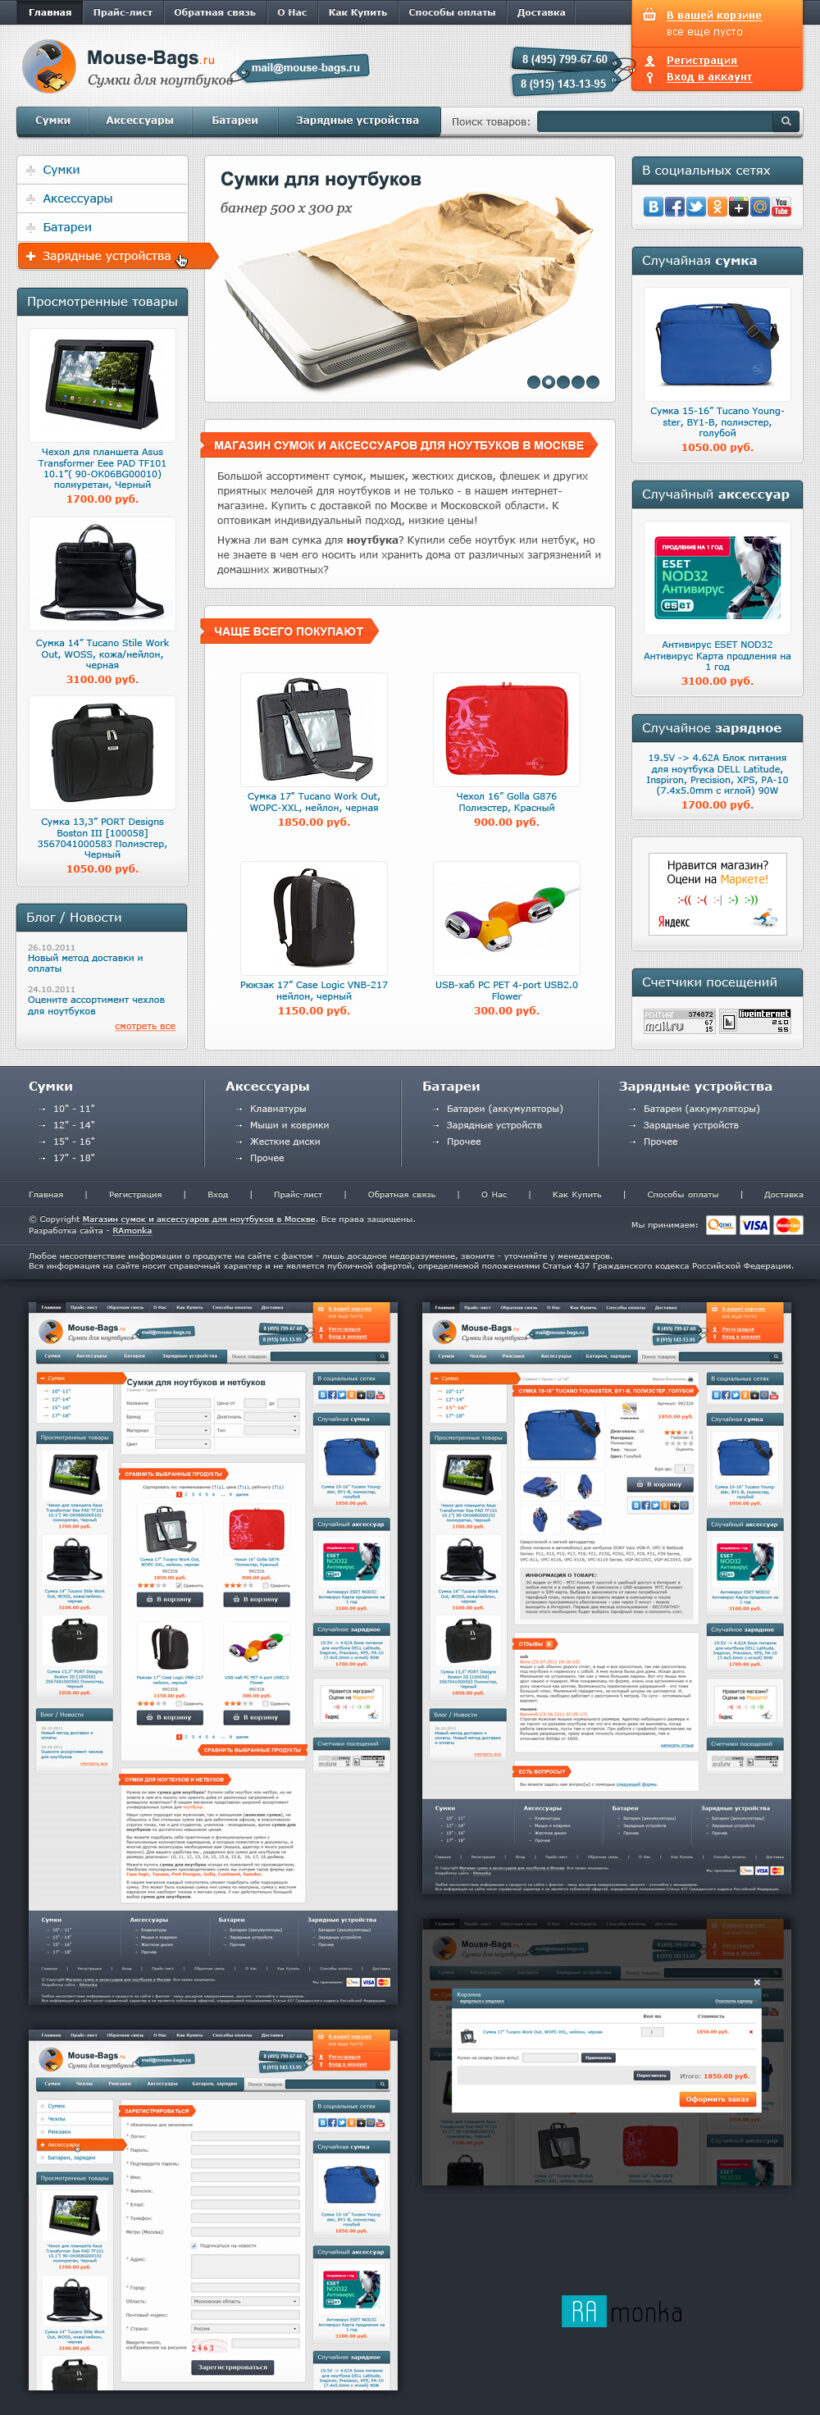 Full Stack Web Development on CMS WebAsyst Shop-Script Laptop Bags and Accessories Online Store Mouse-Bags